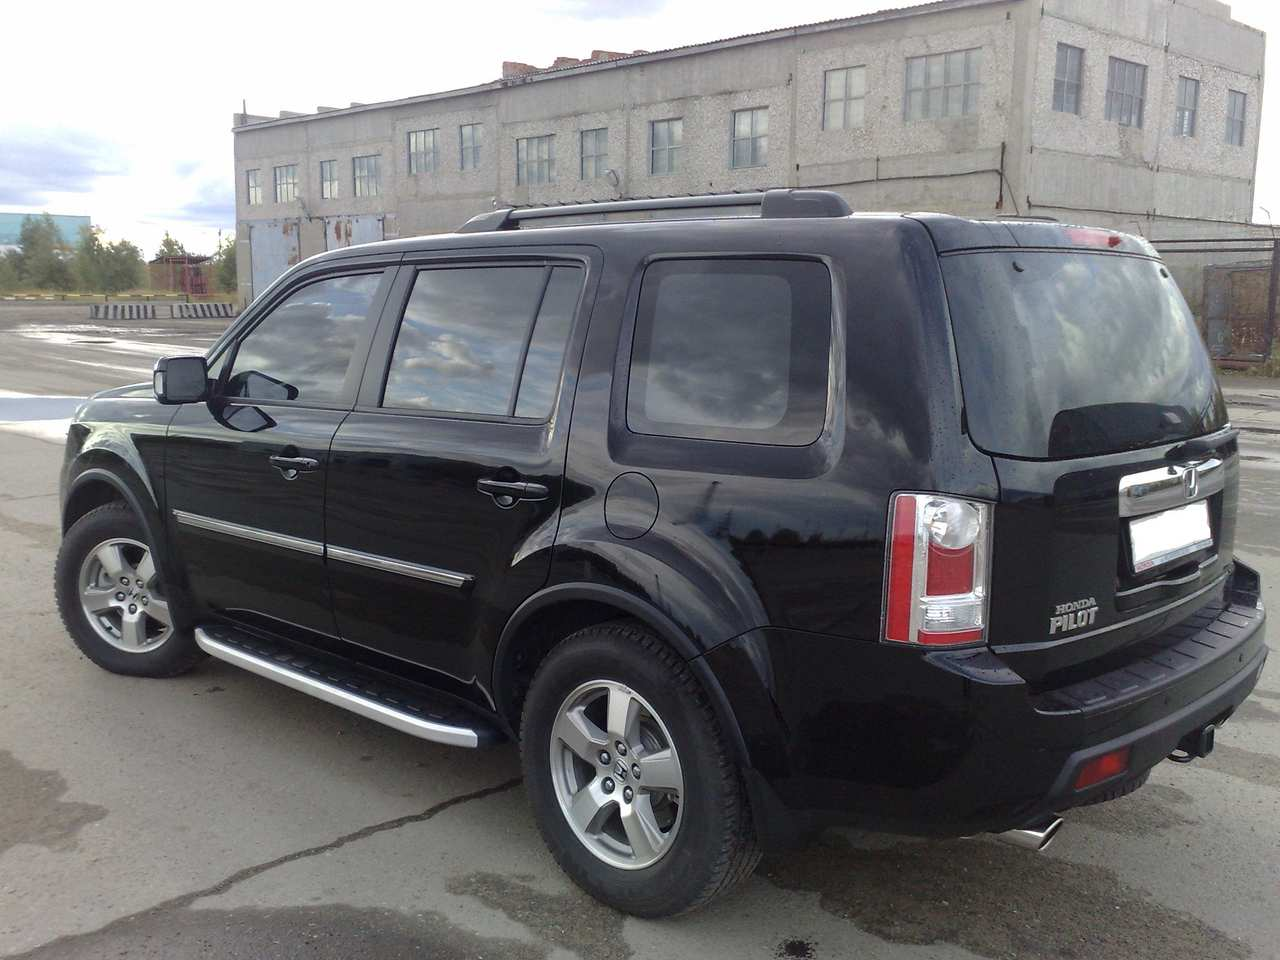 used 2008 honda pilot photos 3471cc gasoline automatic for sale. Black Bedroom Furniture Sets. Home Design Ideas